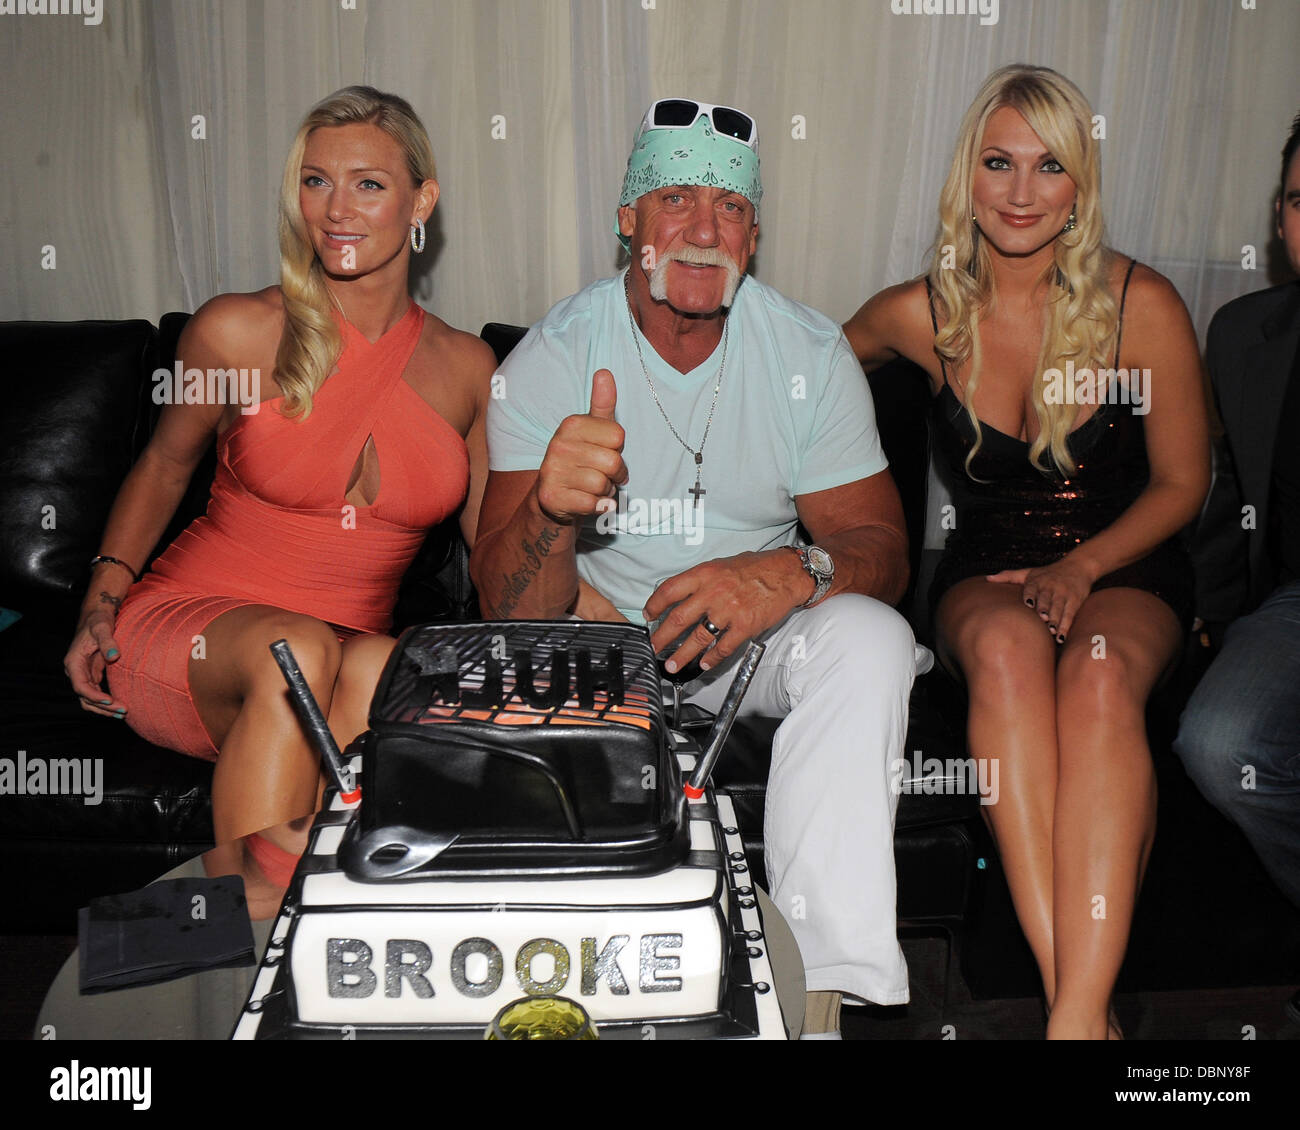 hulk hogan and his daughter